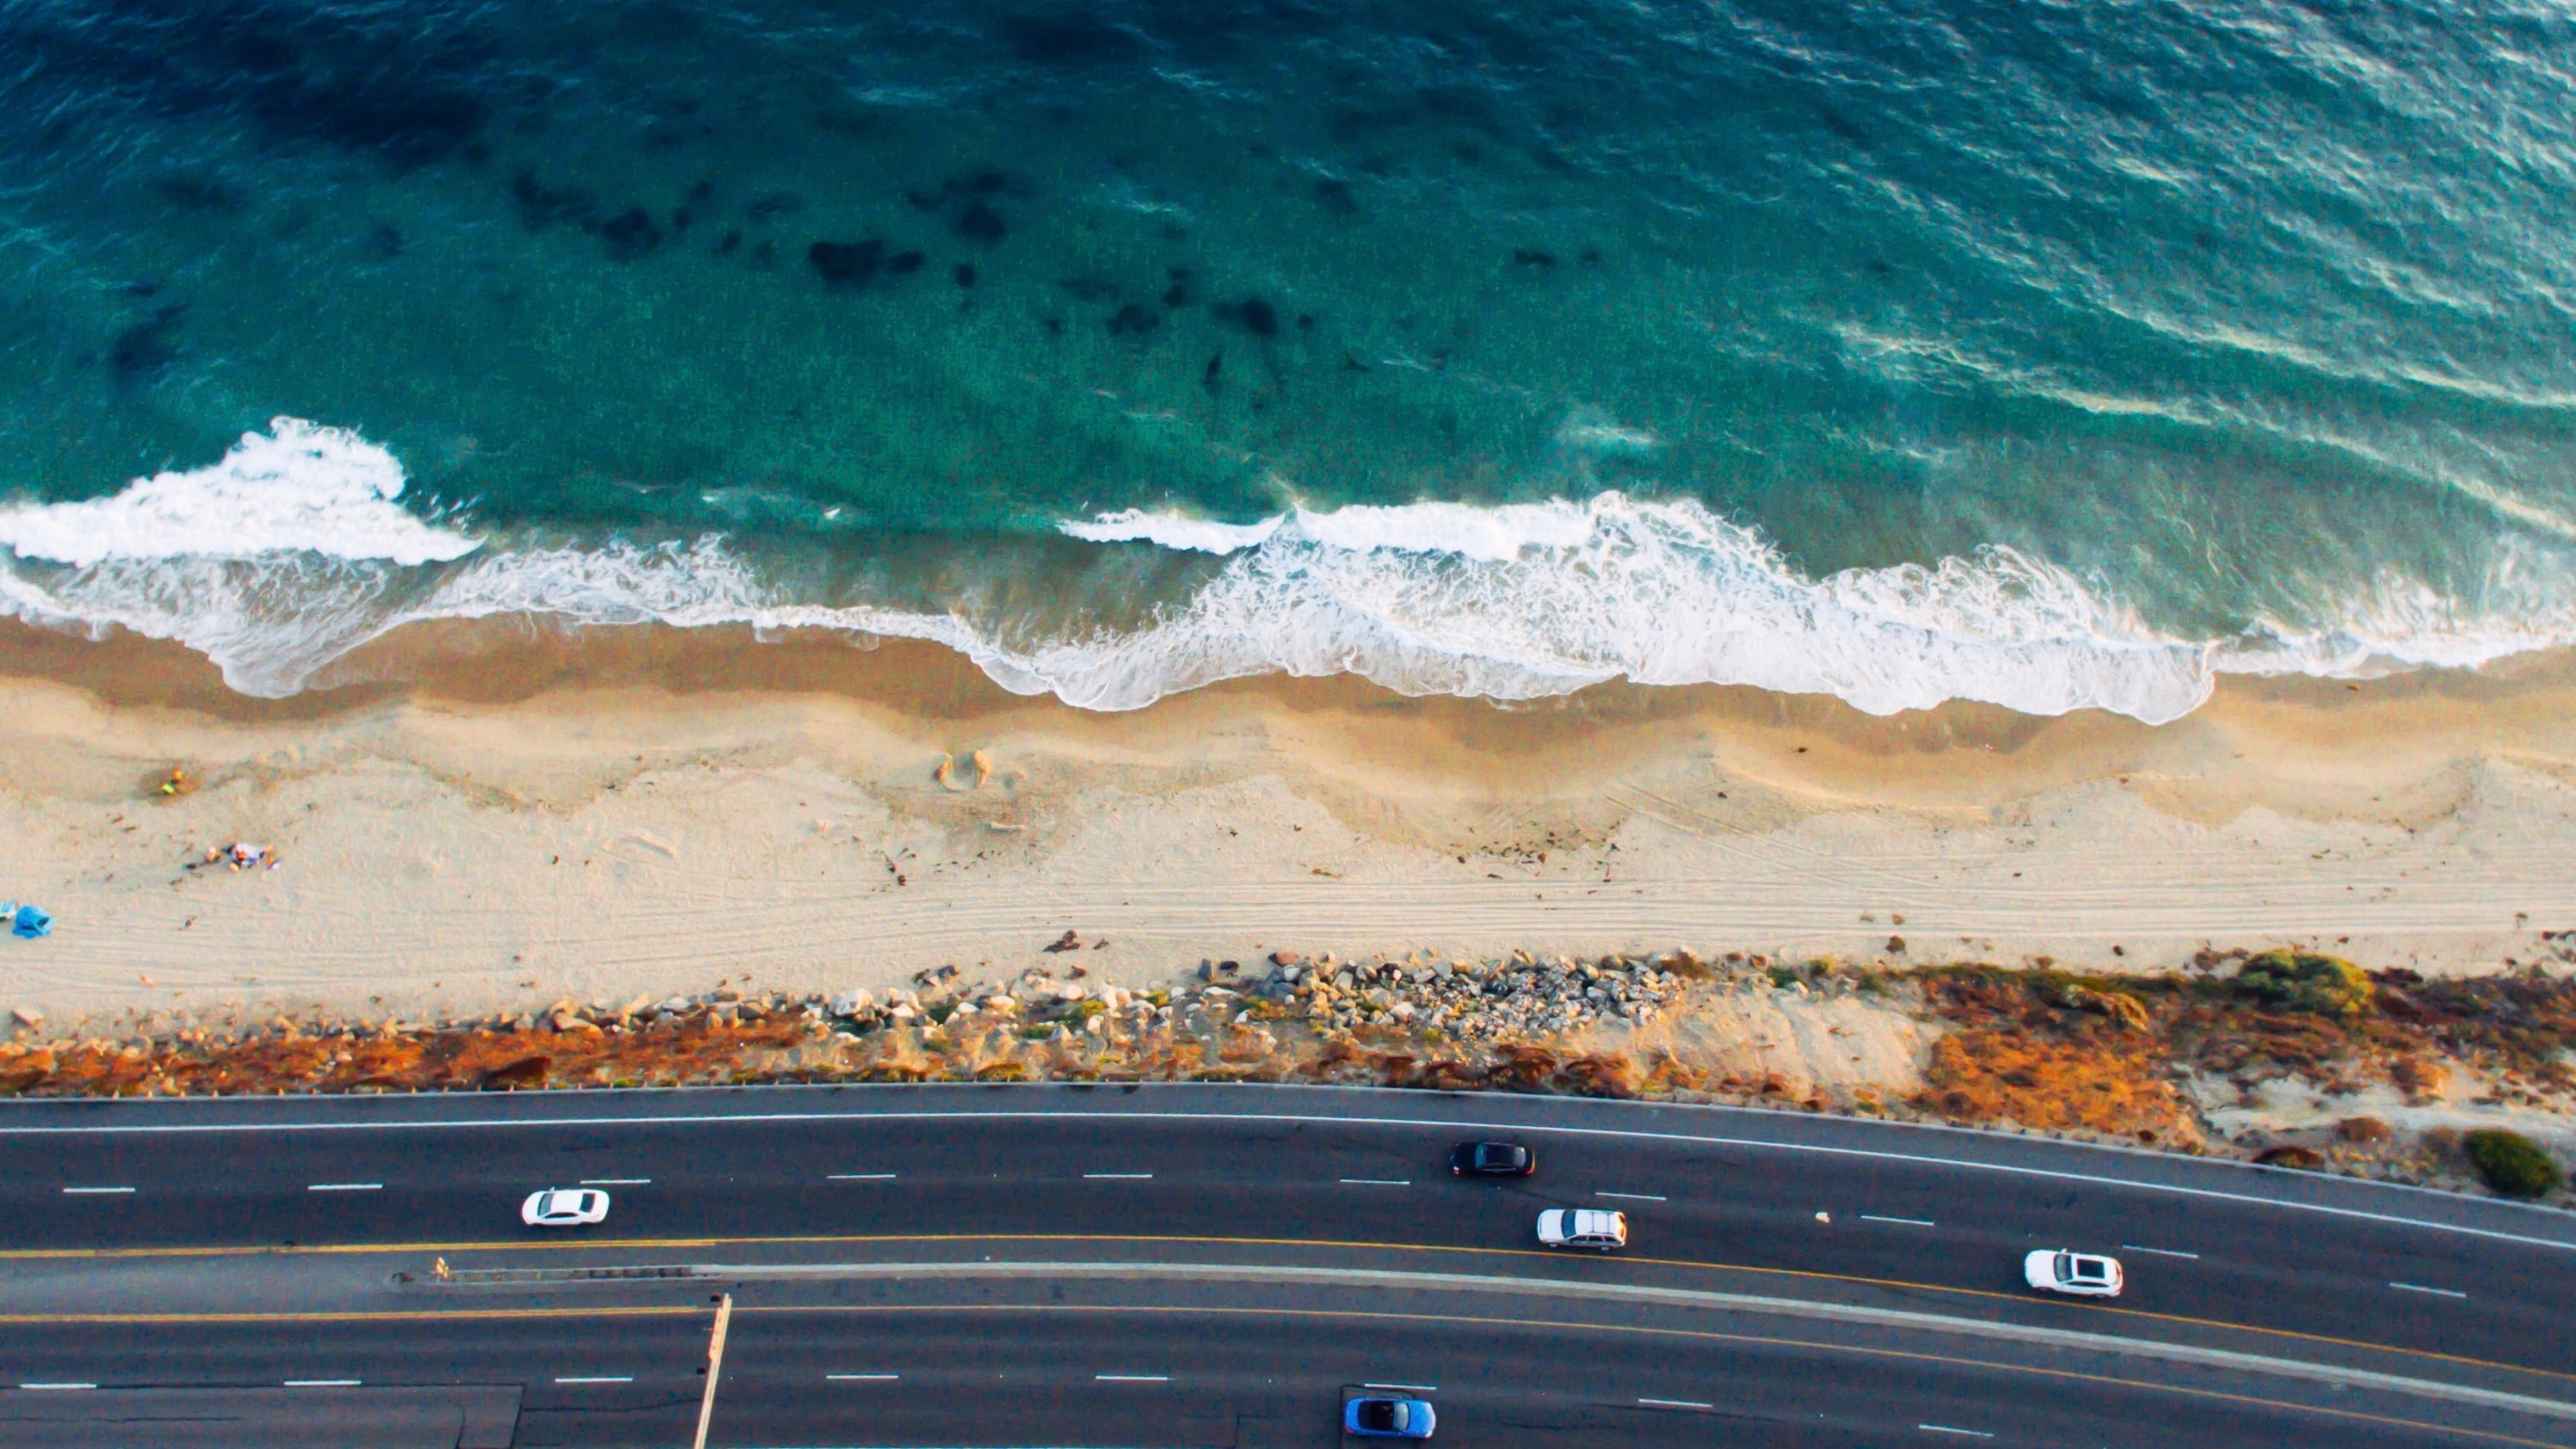 Drone view of a highway with cars by the sandy beach shoreline at Crystal Cove State Park